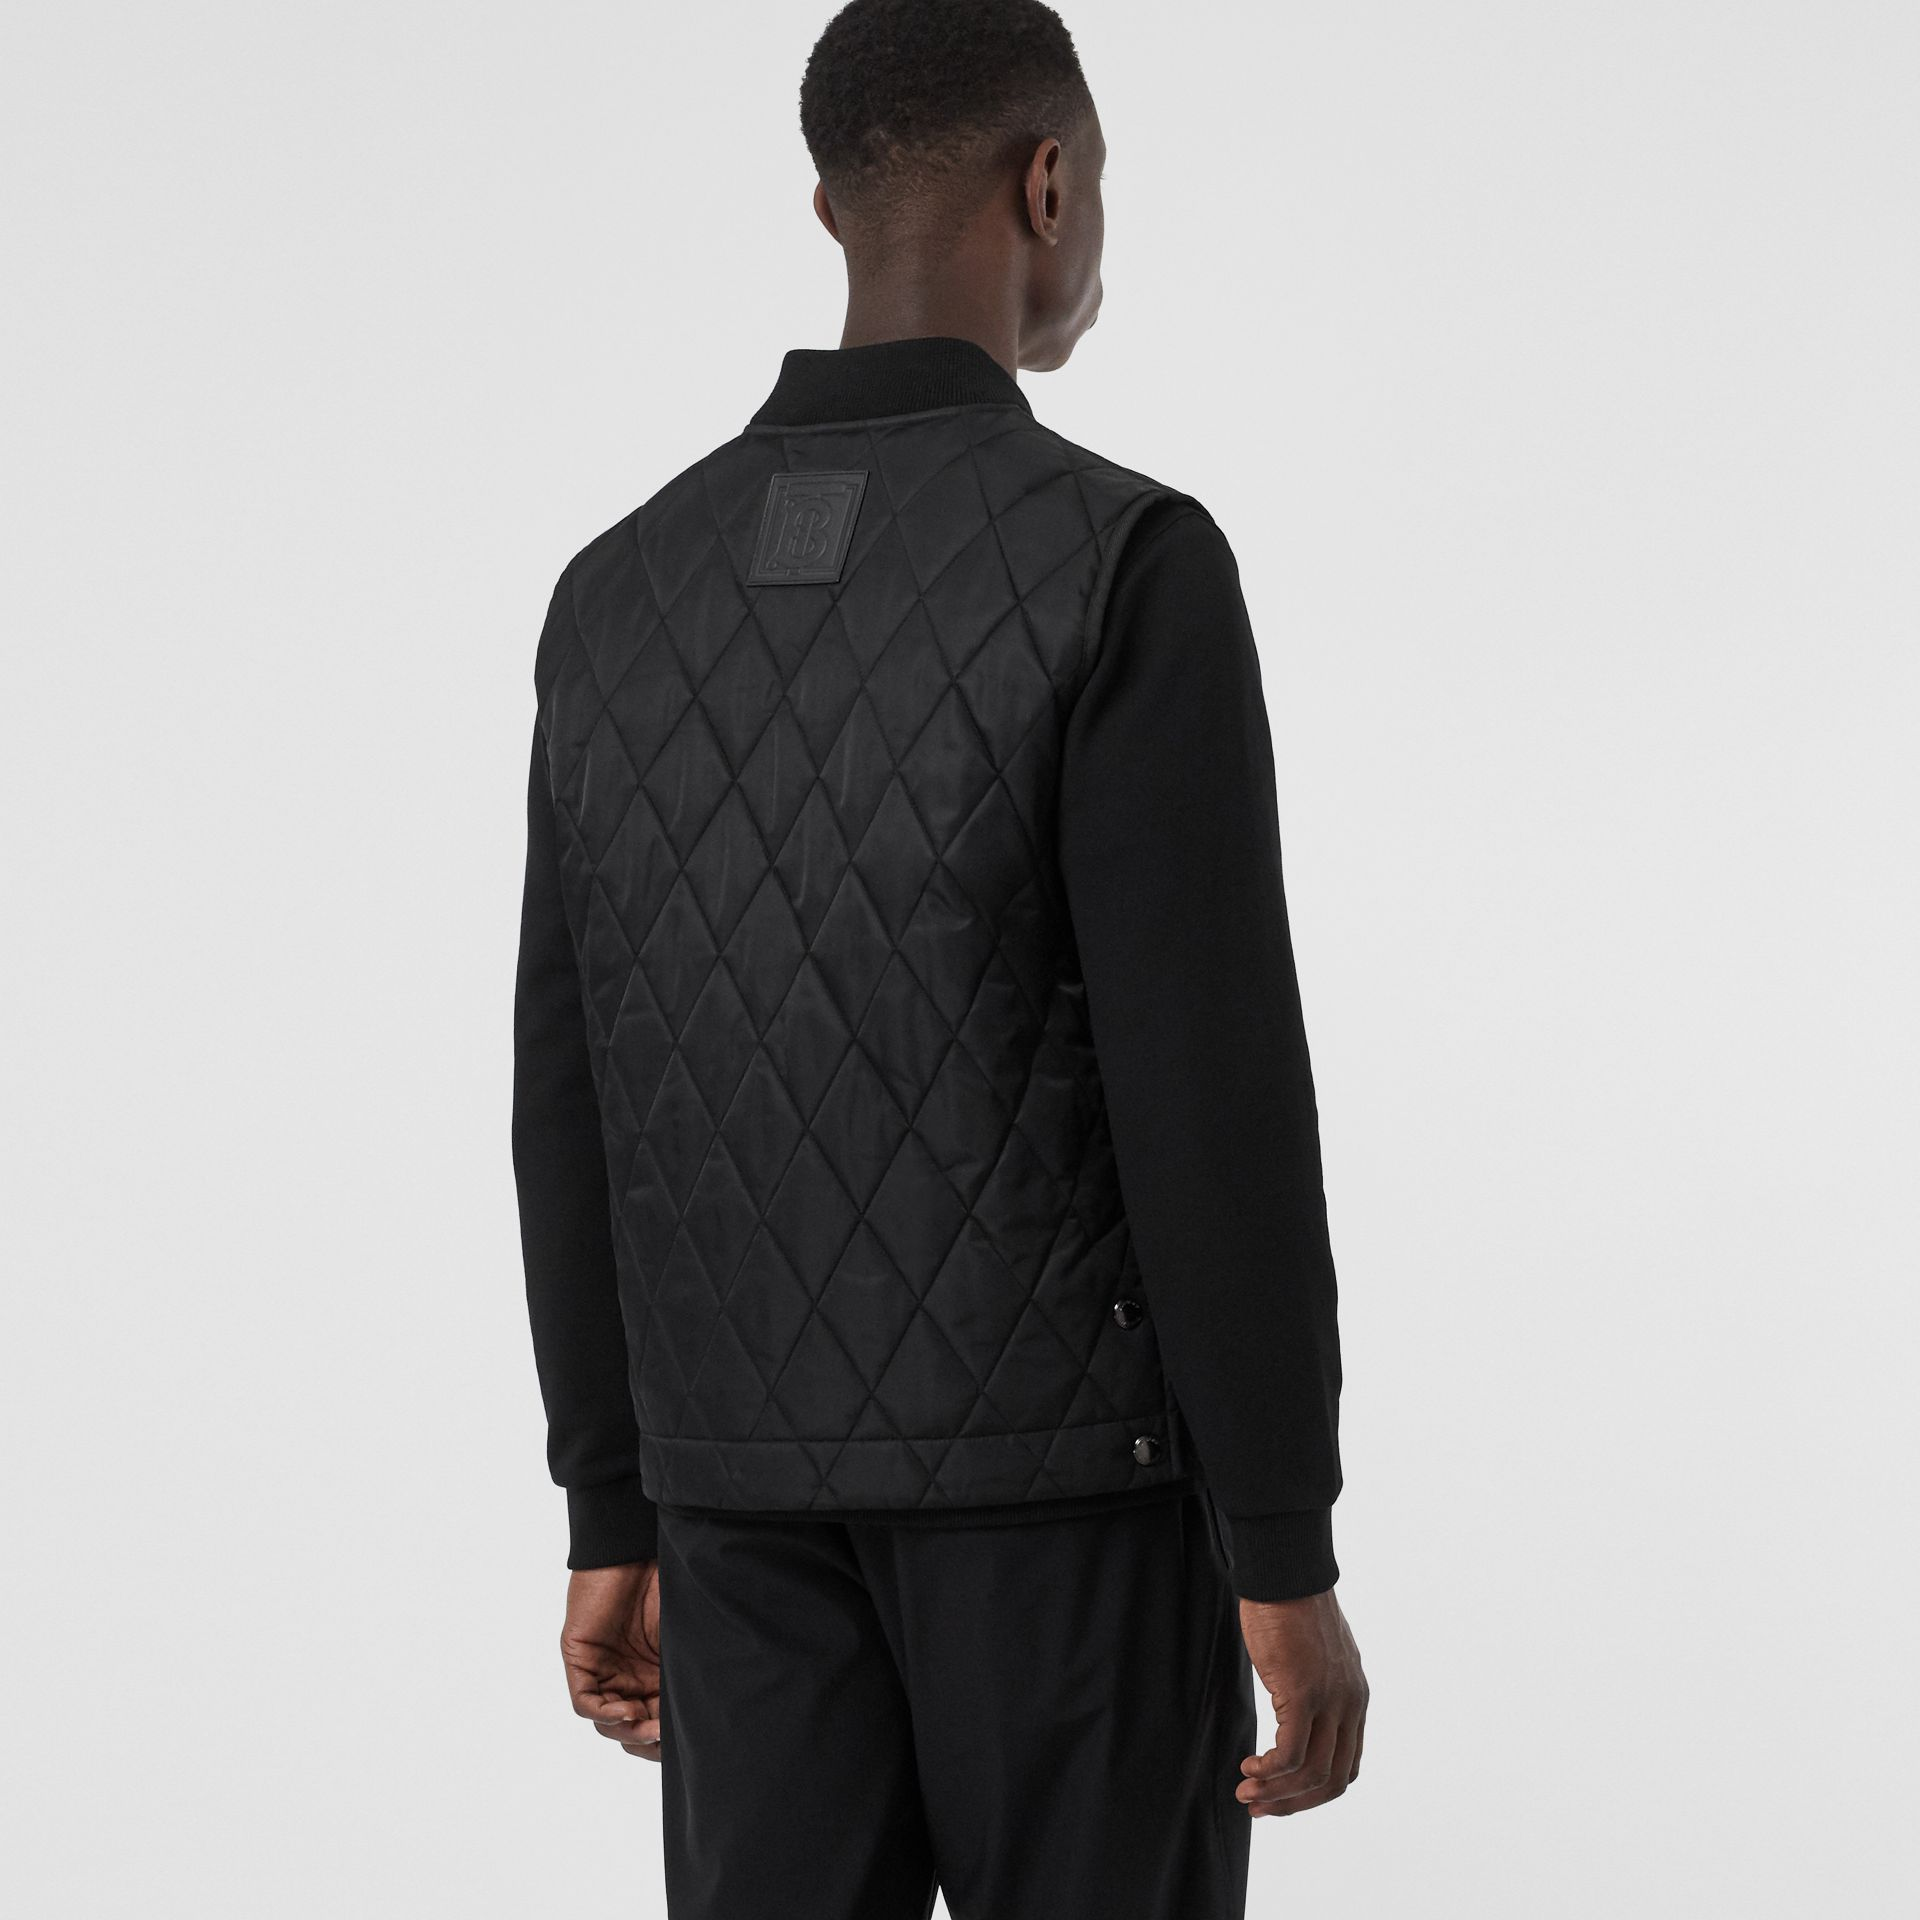 Monogram Motif Diamond Quilted Gilet in Black - Men | Burberry Canada - gallery image 2